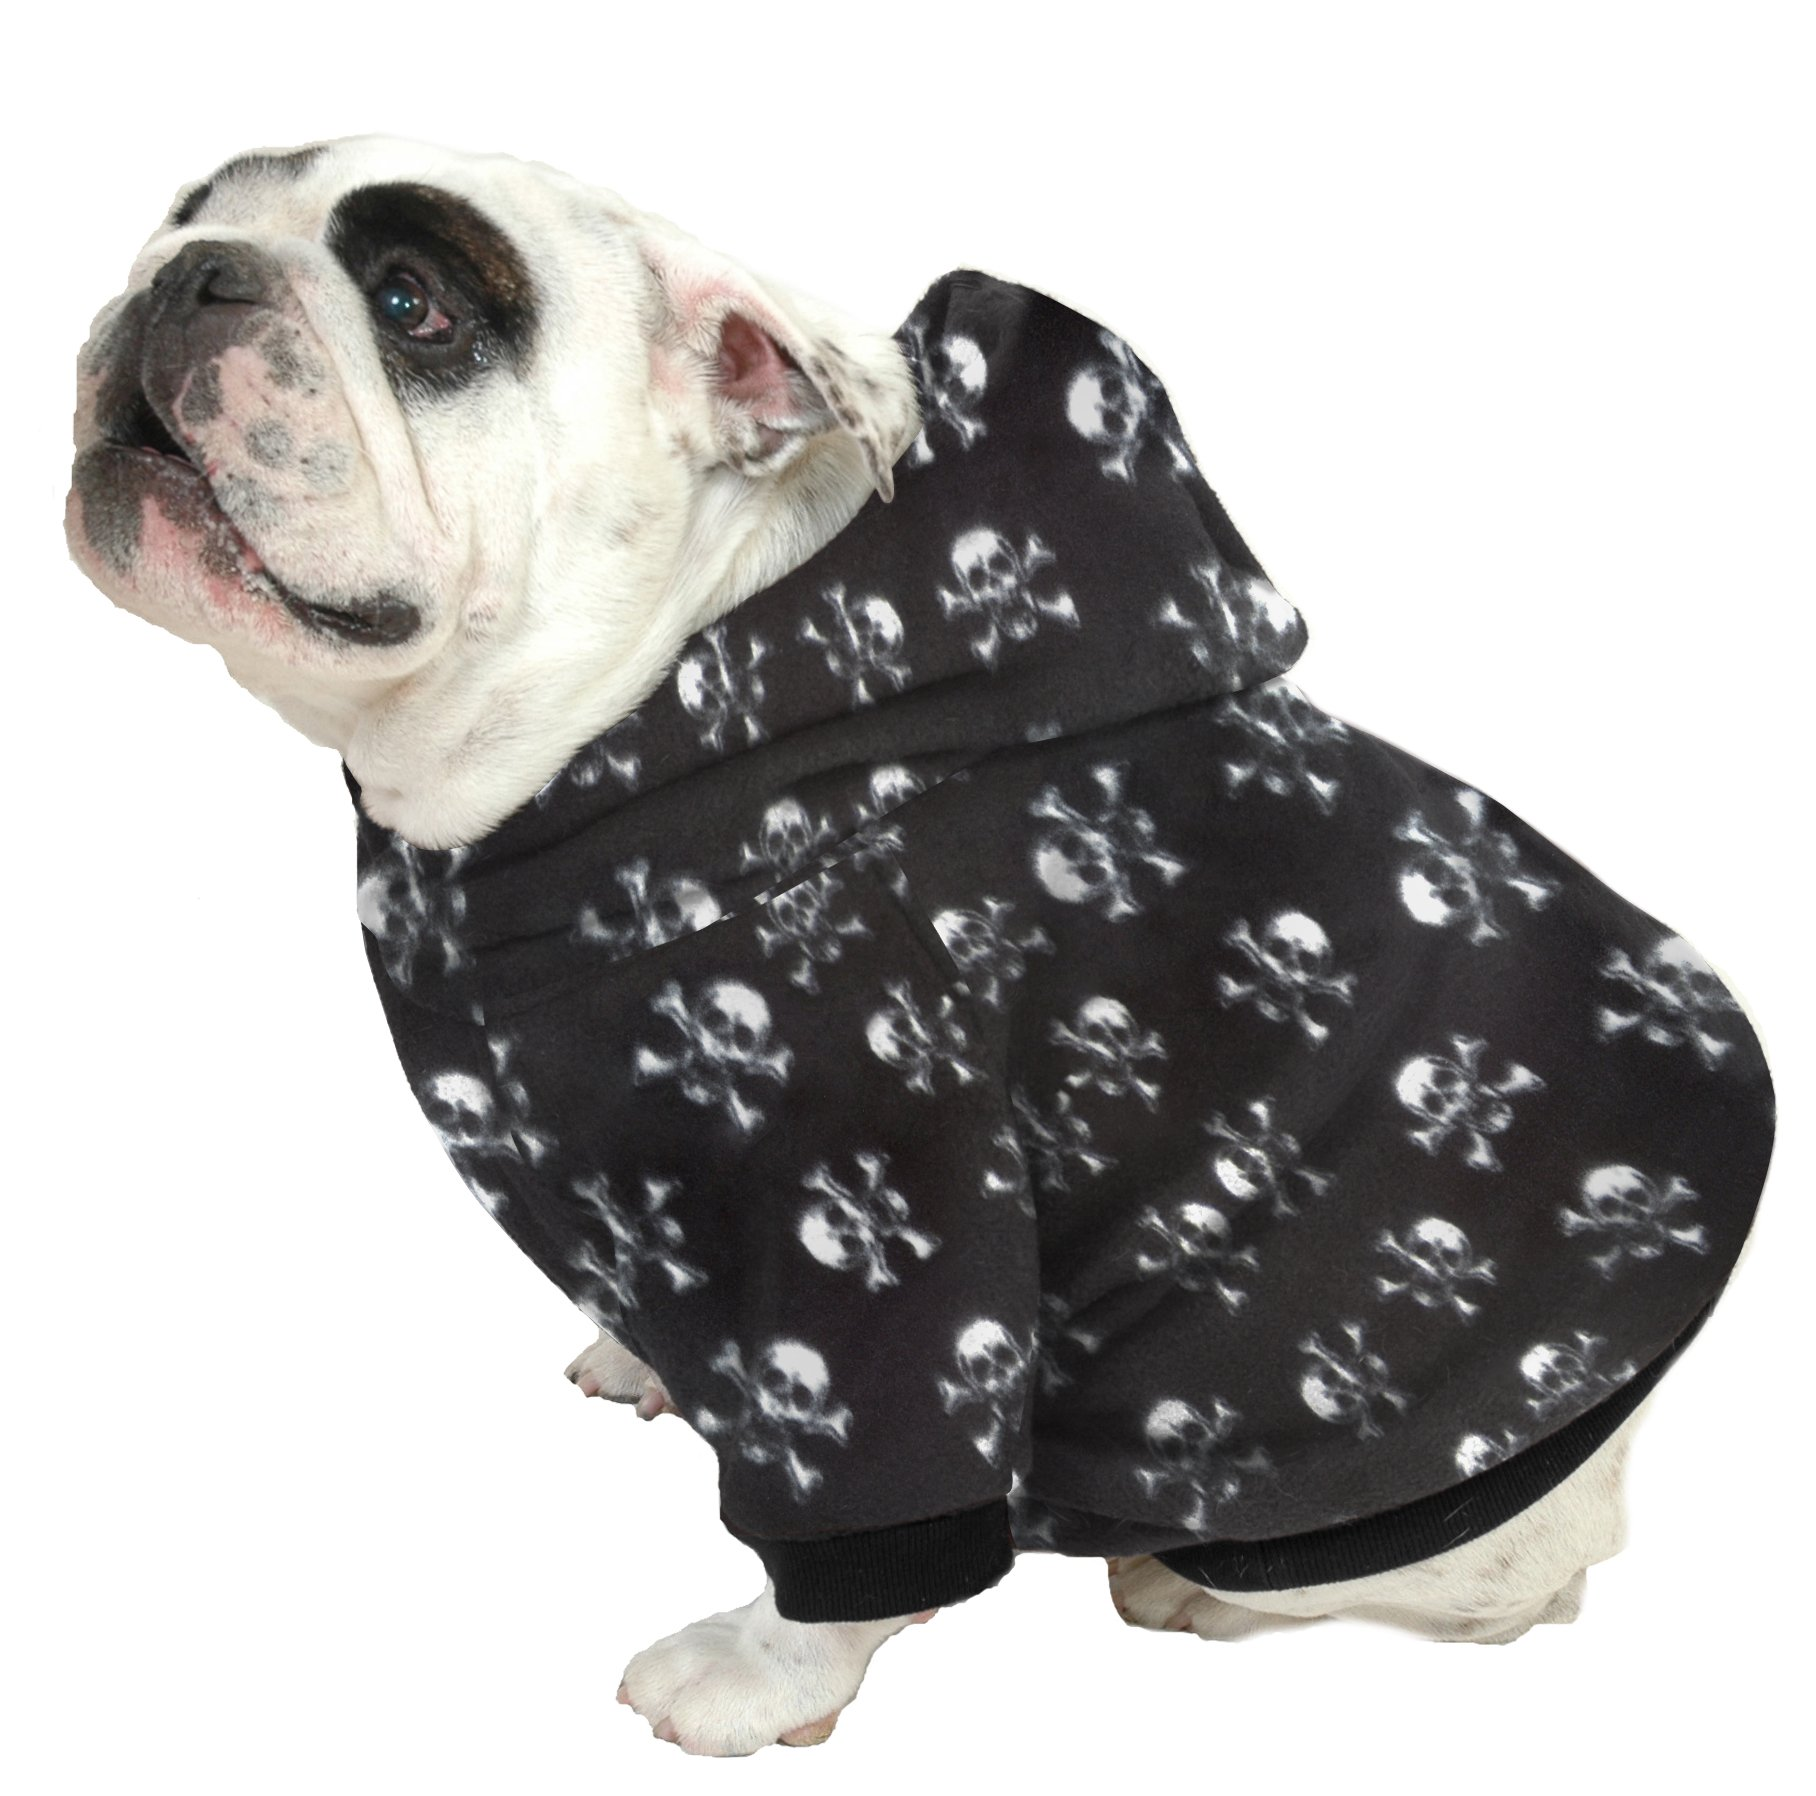 Plus Size Pups English Bulldog Dog Sweatshirts - Sizes Beefy and Bigger Than Beefy with More Than 20 Fleece Patterns to Choose from! (Bigger Than Beefy, White Skull Heads on Black) by Plus Size Pups